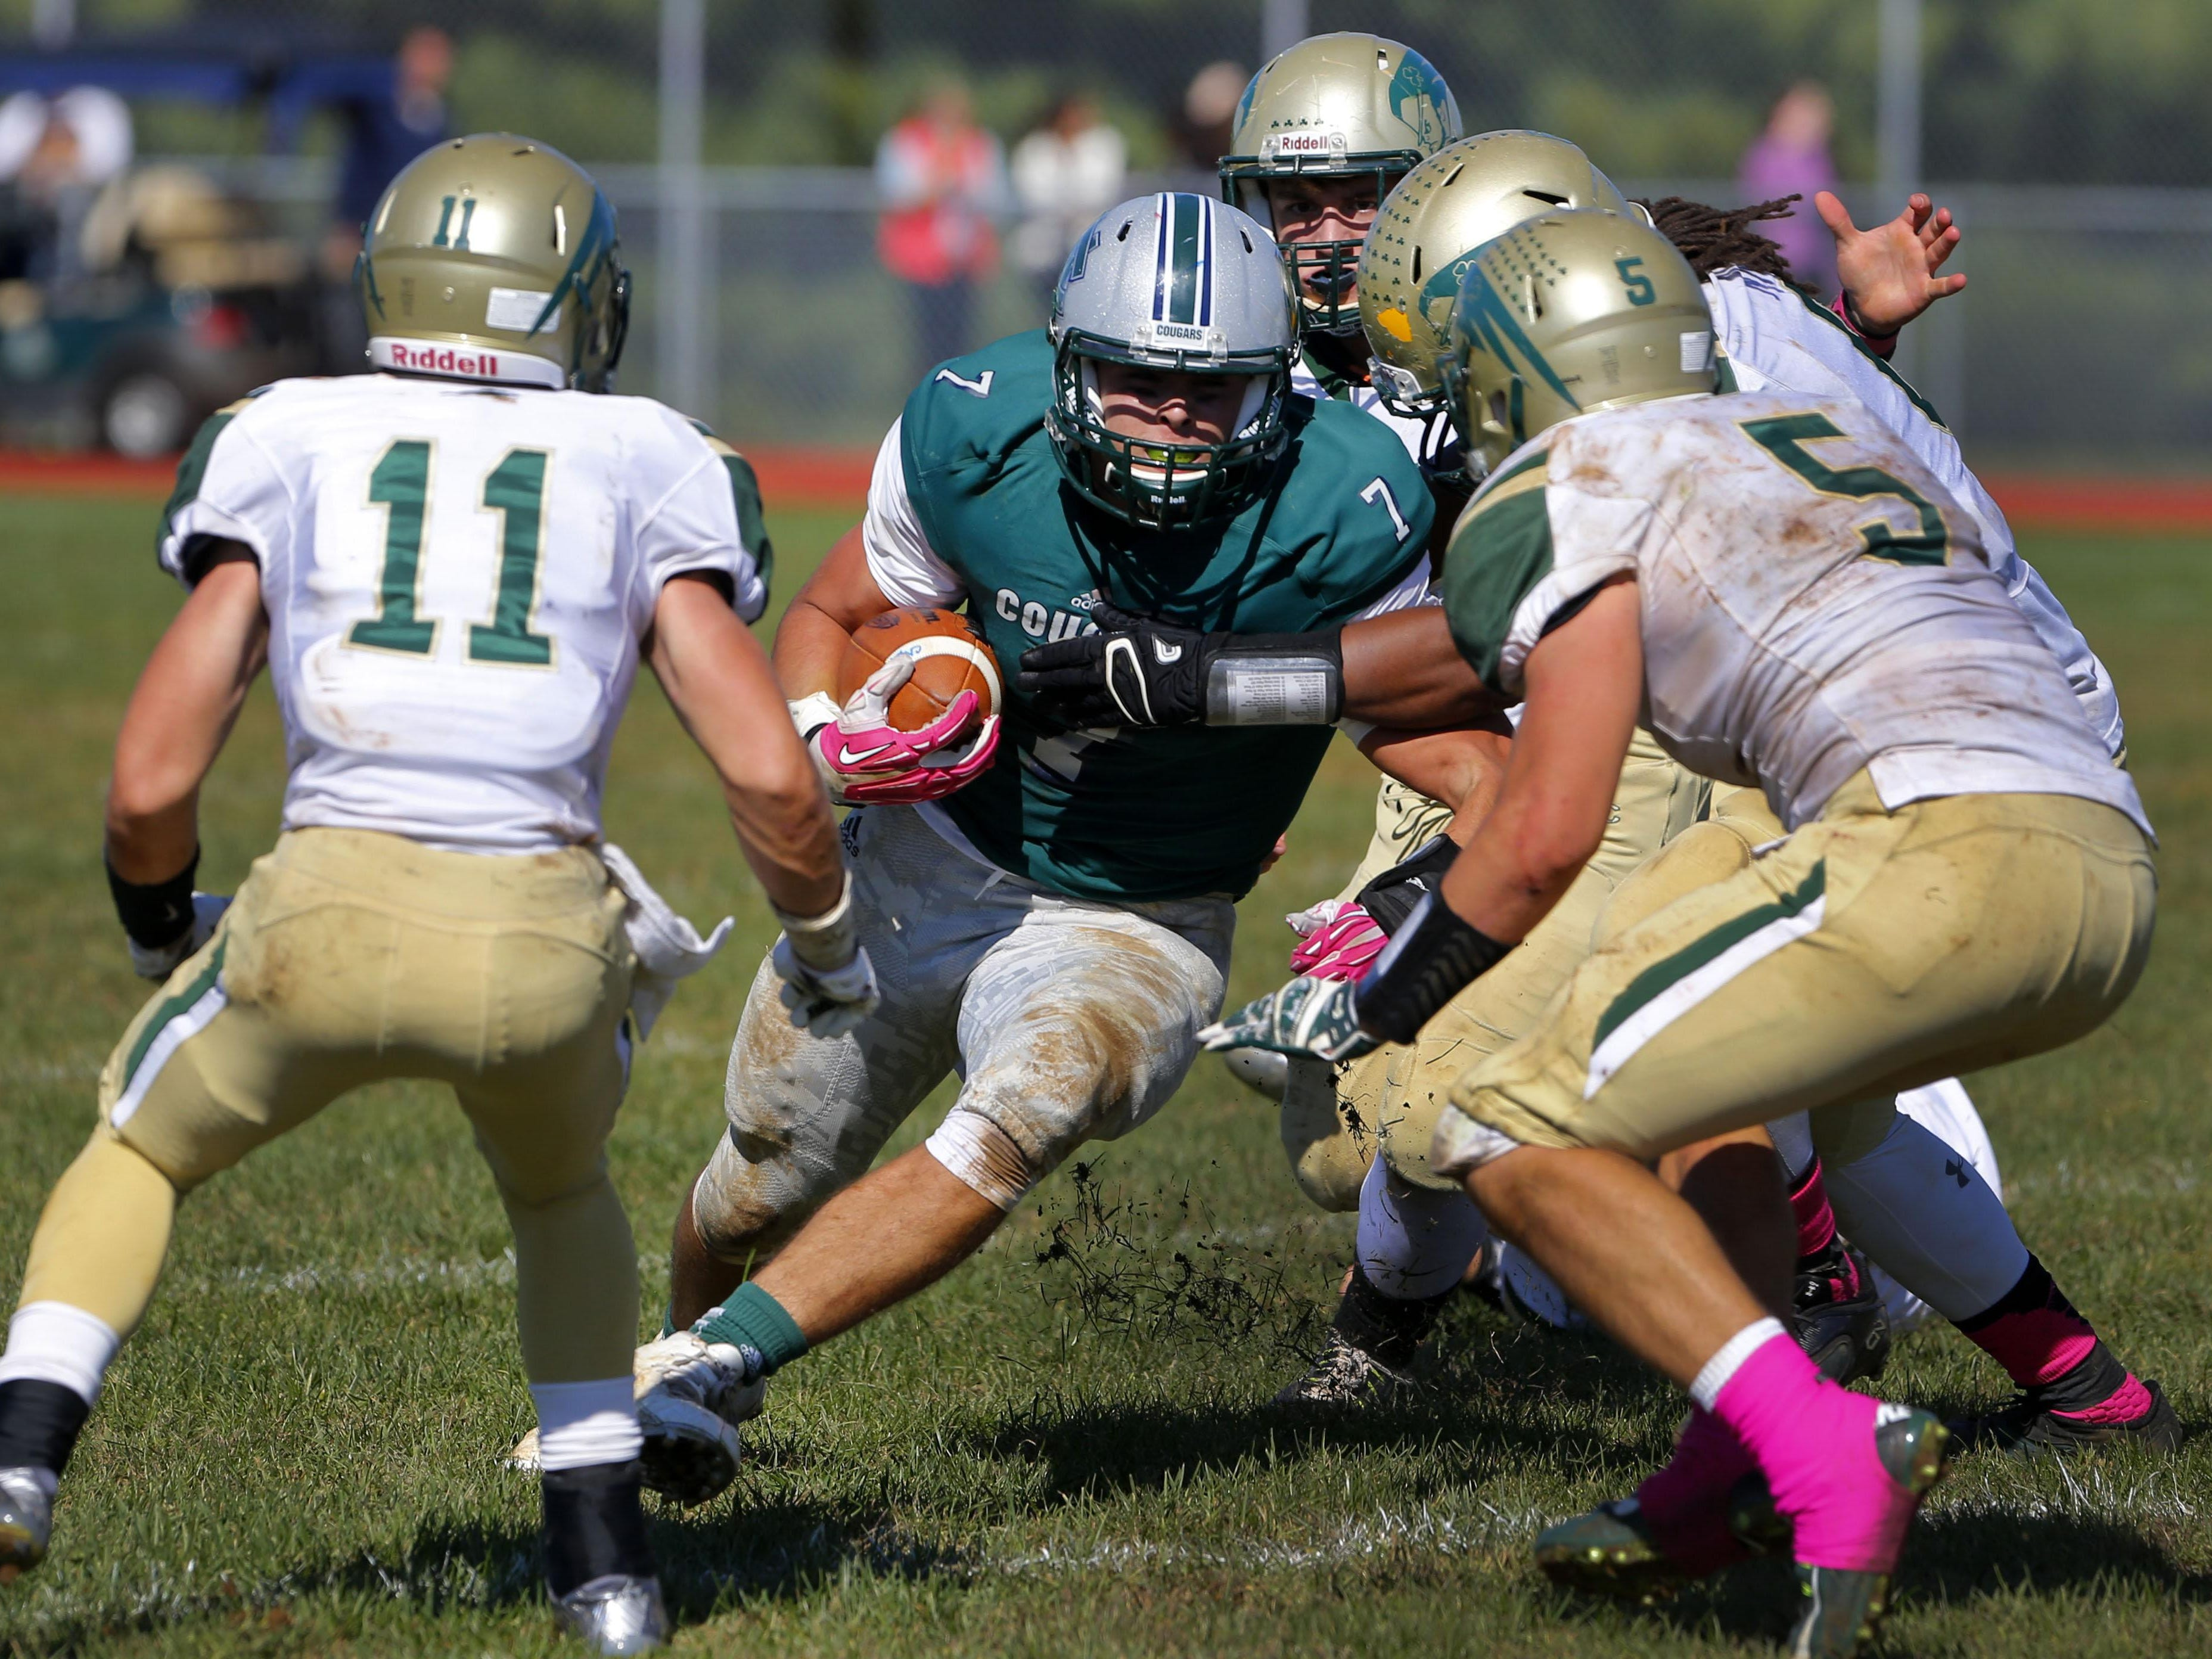 Max Mullaney (7) of Colts runs into Red Bank Catholic defenders Michael Bazofiore (11) and Michael Wilen (5) during game at Colts Neck High School, Colts Neck,NJ. Saturday, October 10, 2015.